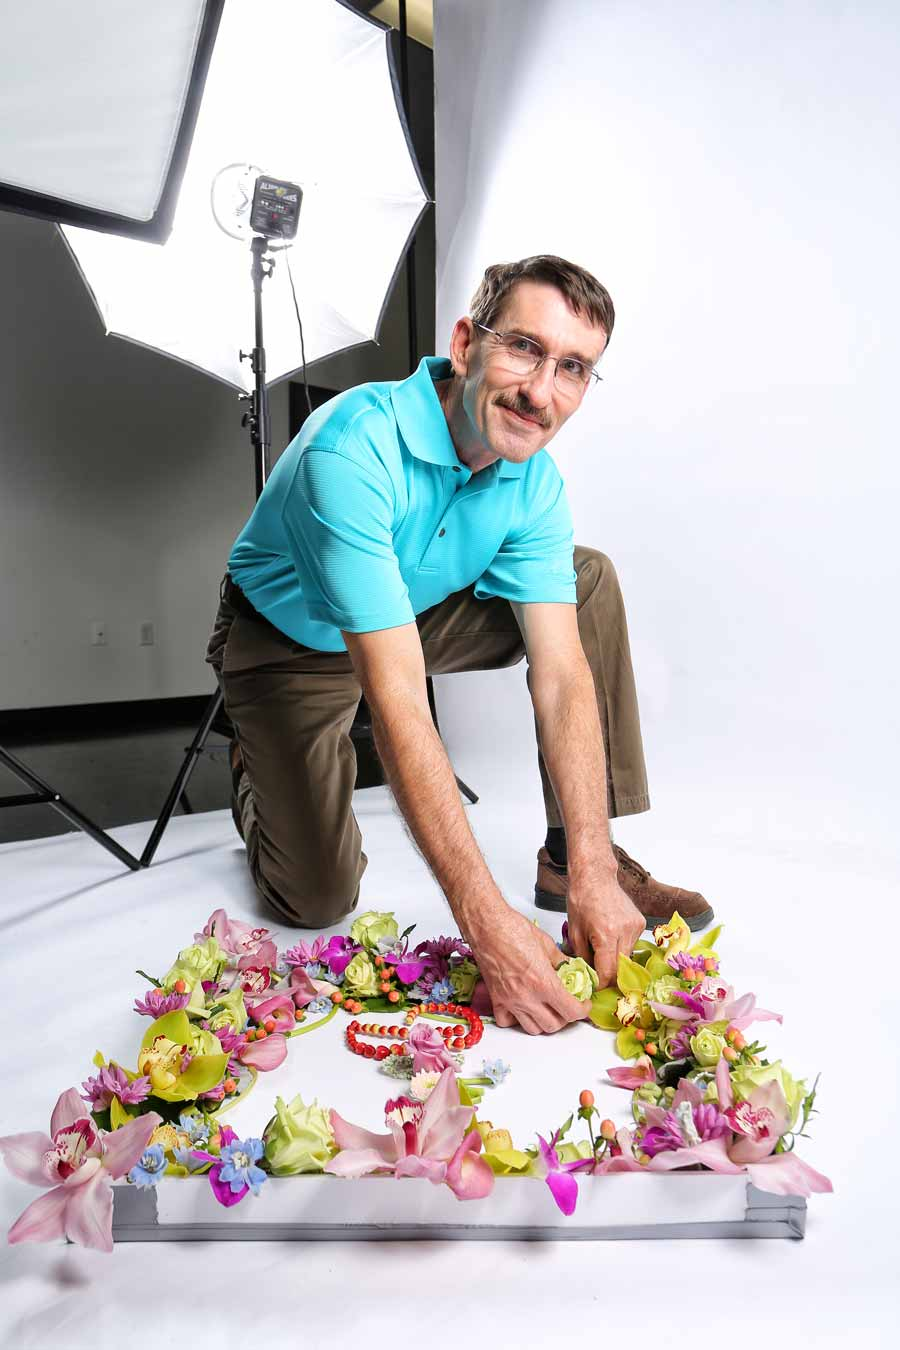 March 2014: Bob Tucker definitely drives Miss Daisy's Flowers and Gifts, the downtown Leesburg business that's first choice of brides in Lake County. Bob really blossomed when the Florida State Florists Association named him Designer of the Year.